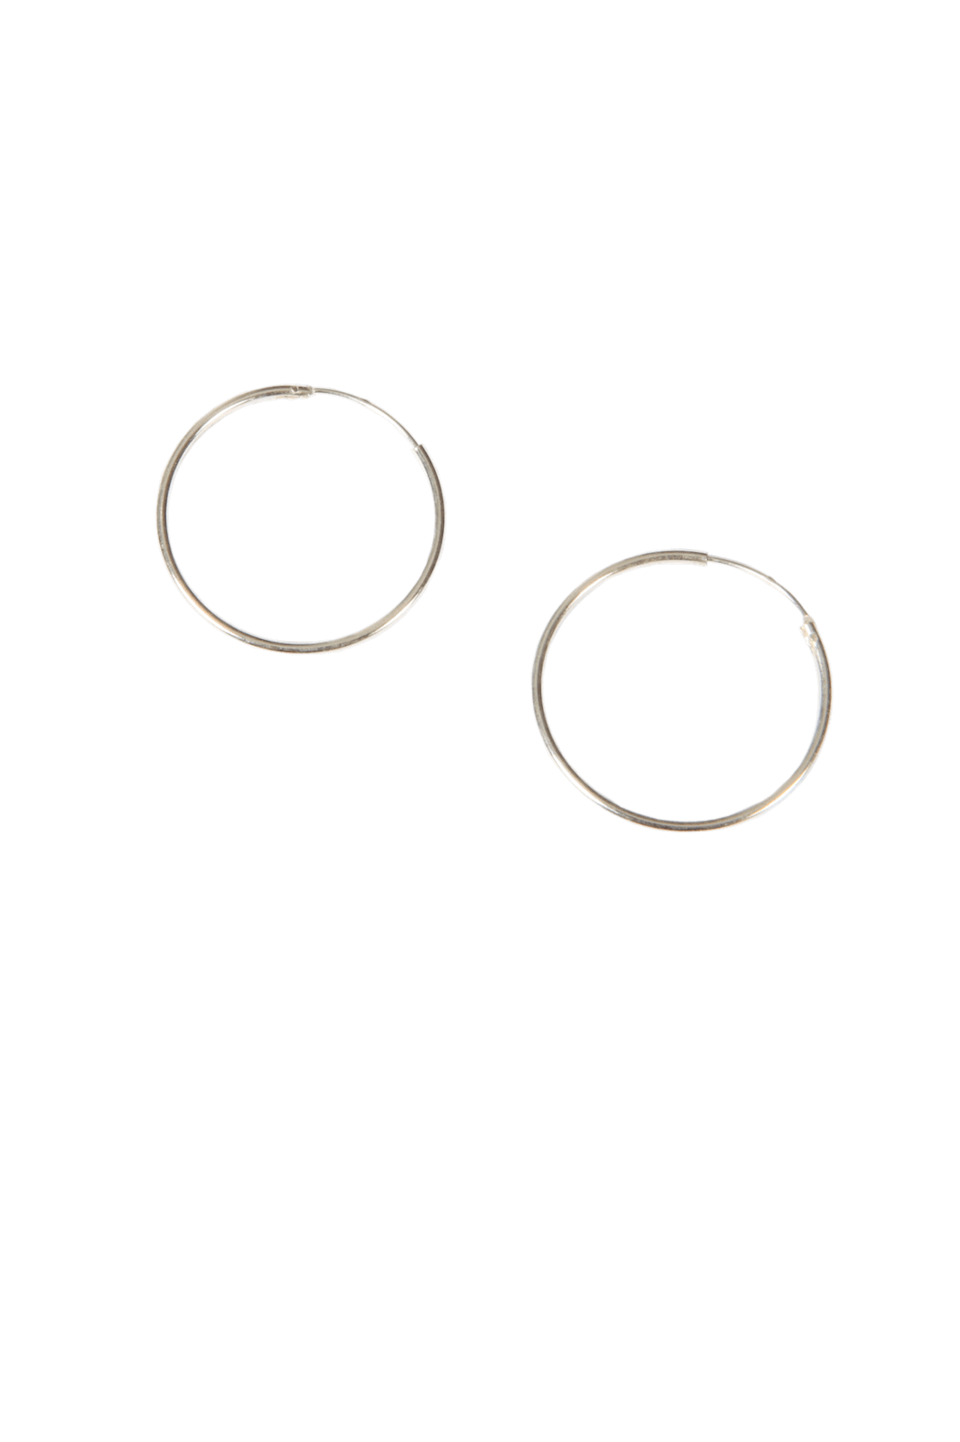 "<br><br><strong>Birdsong</strong> Medium Silver Hoop Earrings, $, available at <a href=""https://birdsong.london/collections/jewellery/products/medium-silver-hoops-1"" rel=""nofollow noopener"" target=""_blank"" data-ylk=""slk:Birdsong"" class=""link rapid-noclick-resp"">Birdsong</a>"